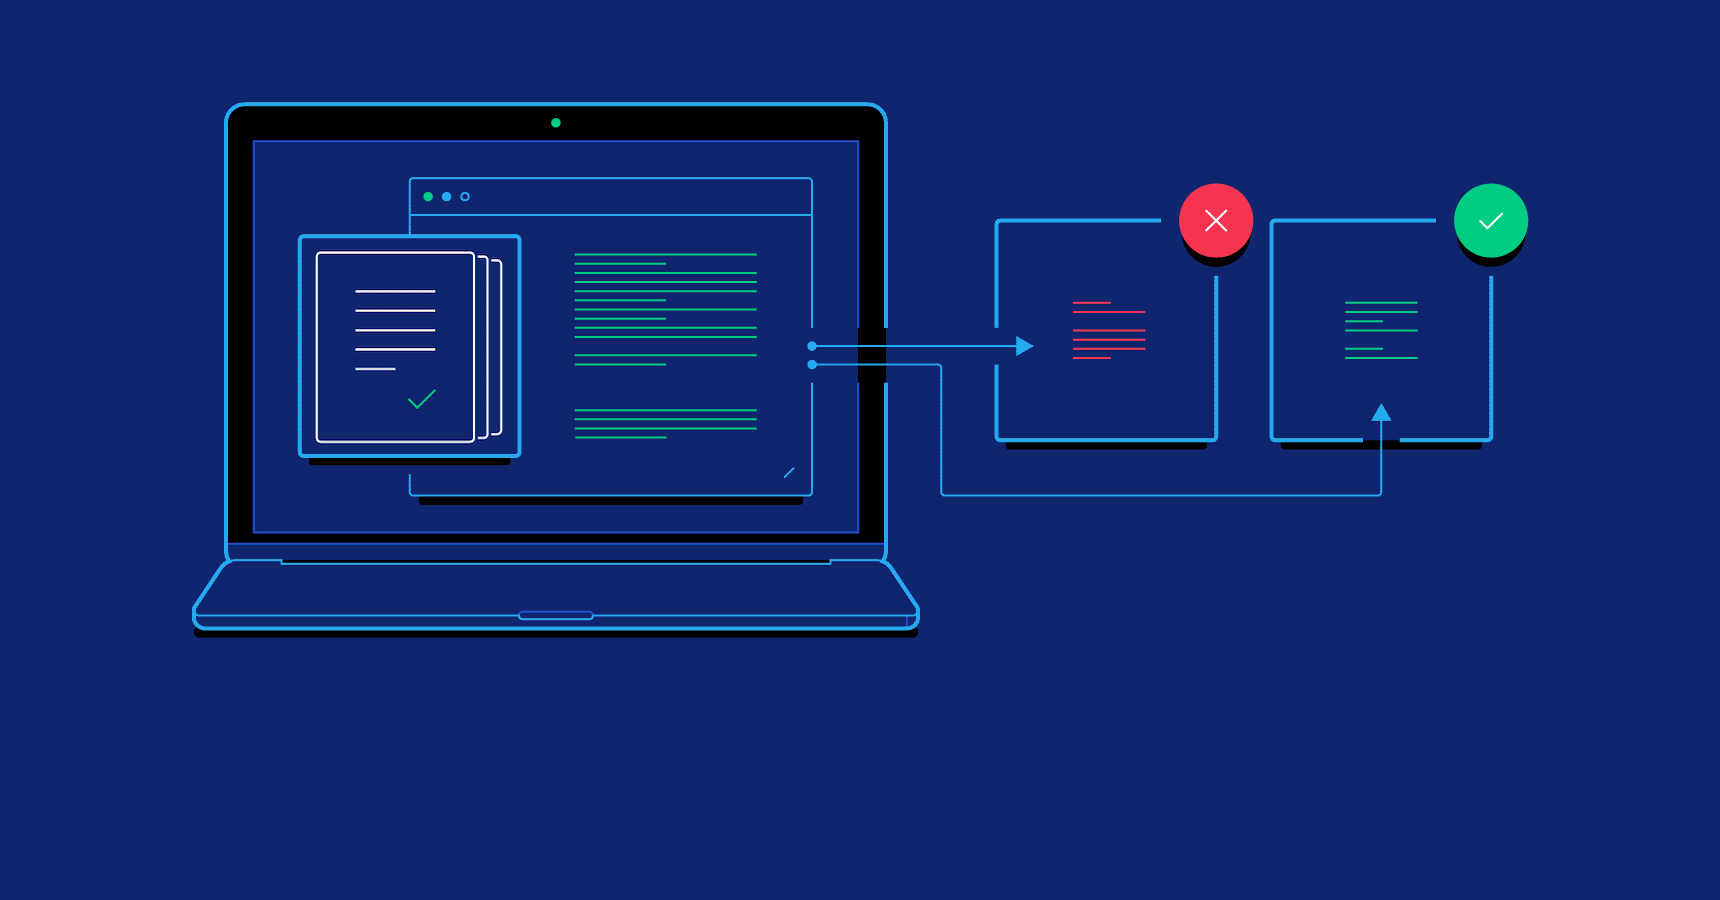 Heuristic Analysis – How to Run a Usability Evaluation | Toptal